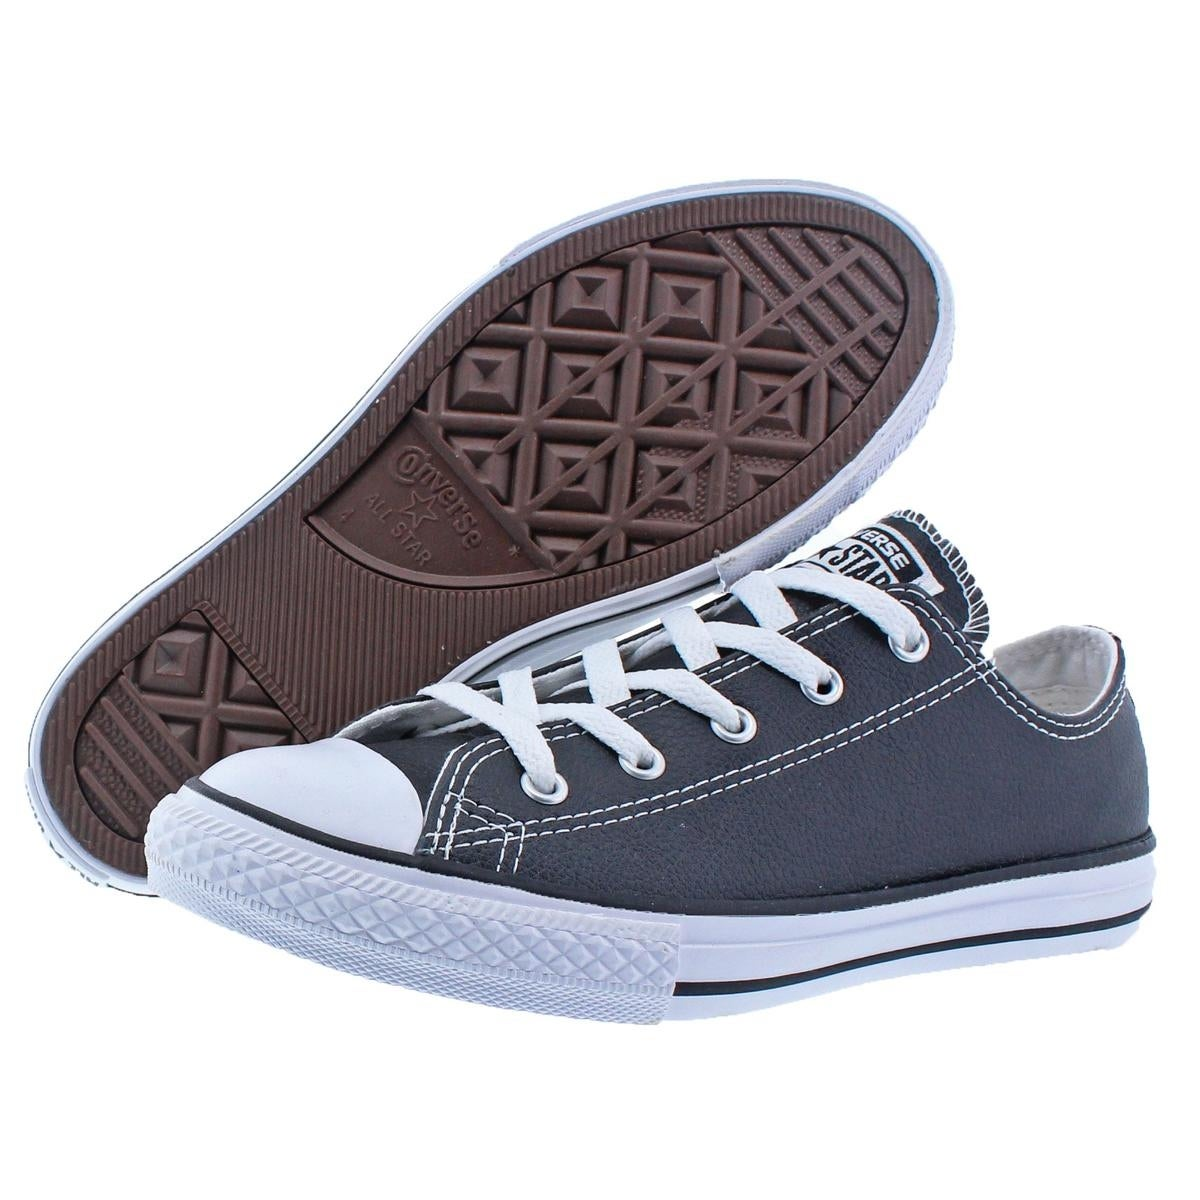 9c56d84bde77 Shop Converse Boys Chuck Taylor Ox Skate Shoes Big Kid Low-Top - Free  Shipping On Orders Over  45 - Overstock - 22133250